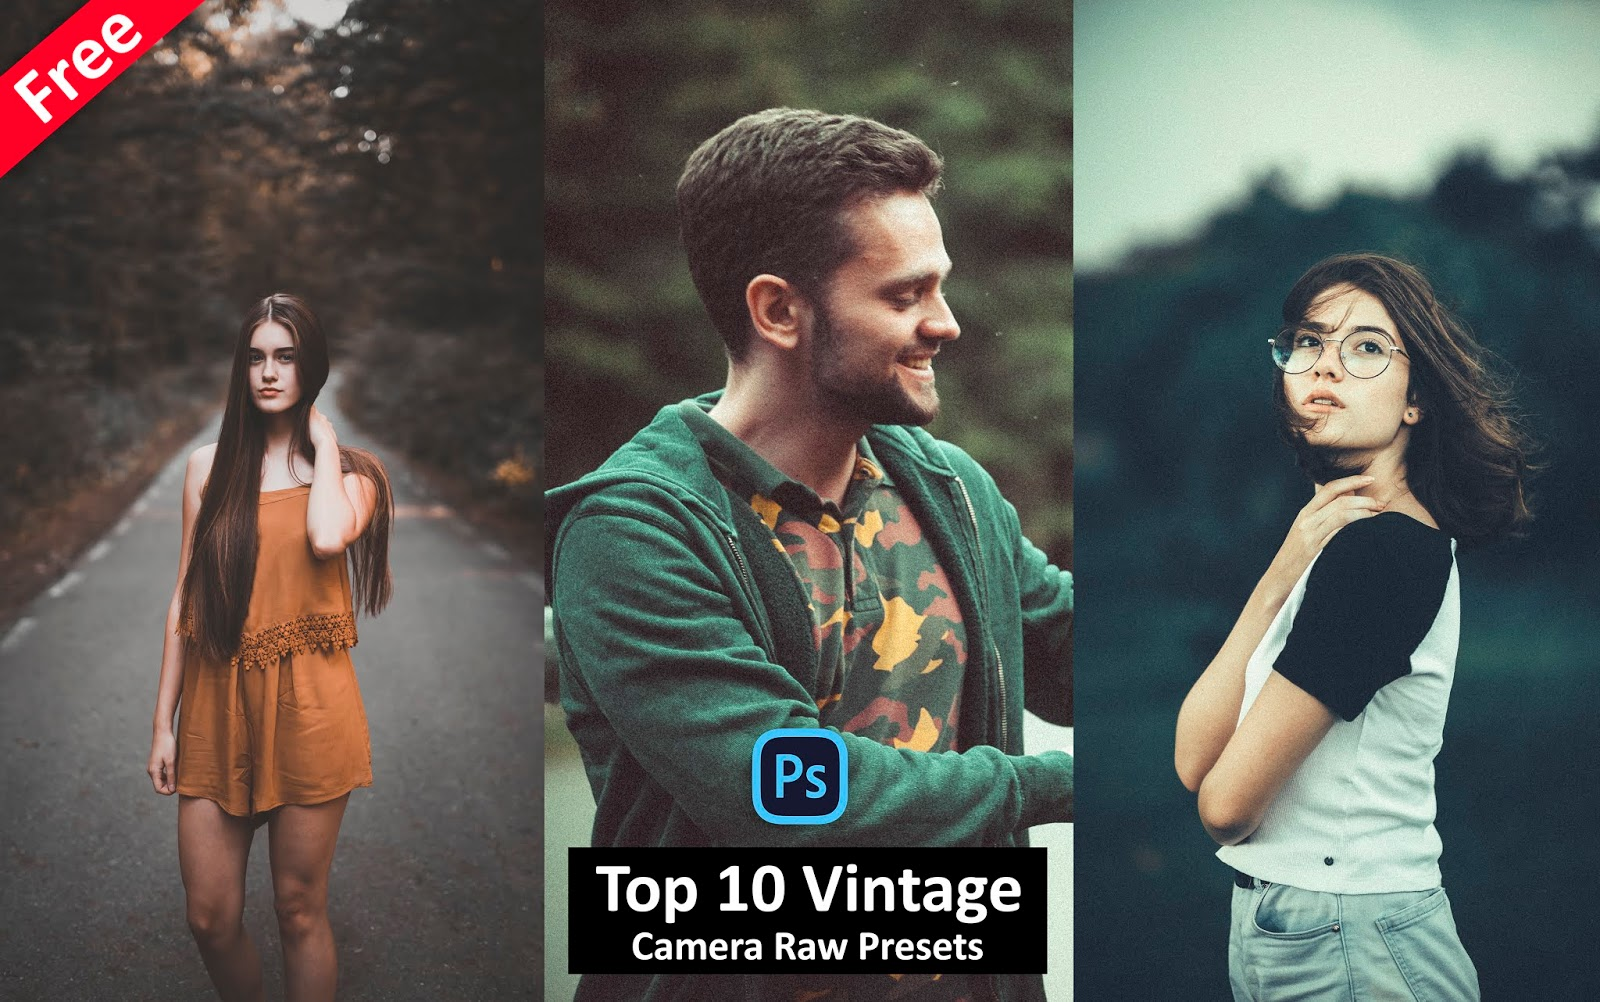 Download Top 10 Vintage Camera Raw Presets for Free | How to Make Vintage Effect in Photoshop